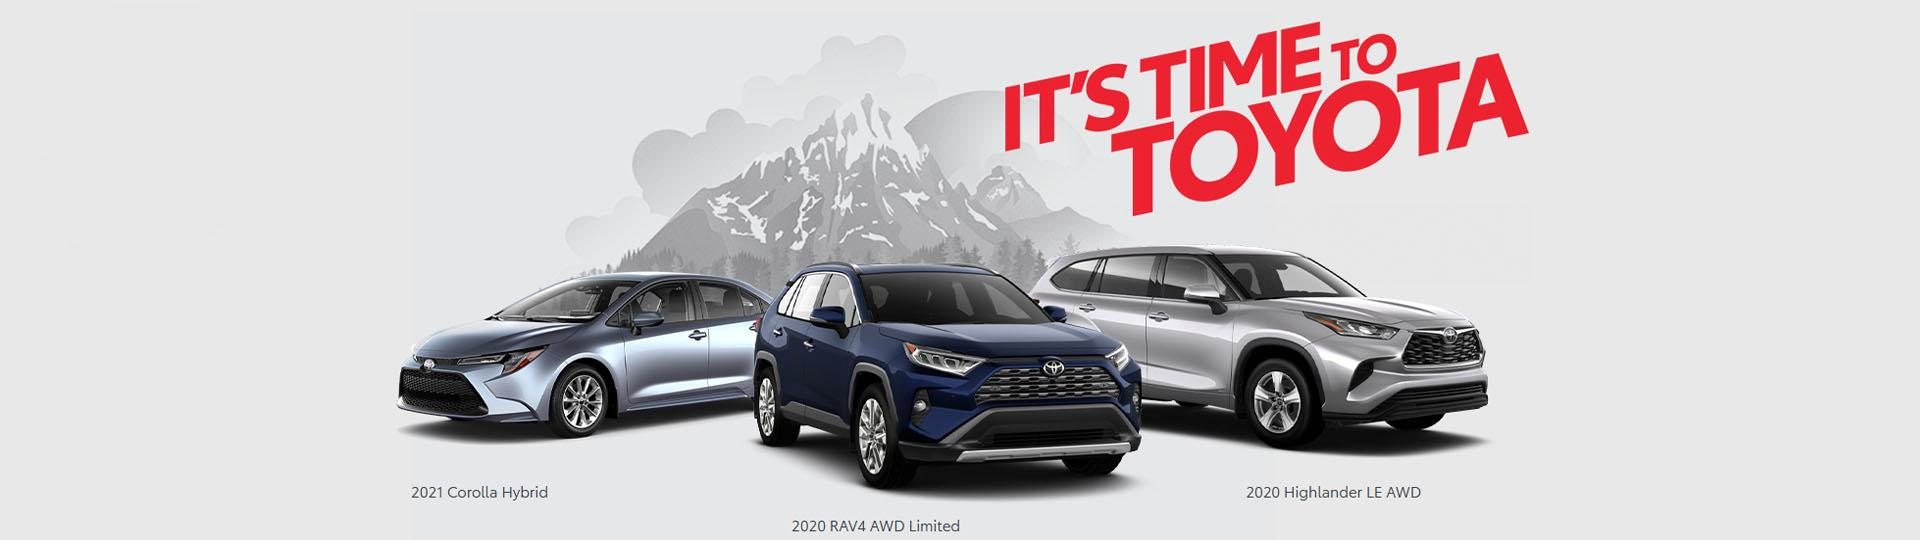 It's Time To Toyota Promo Banner